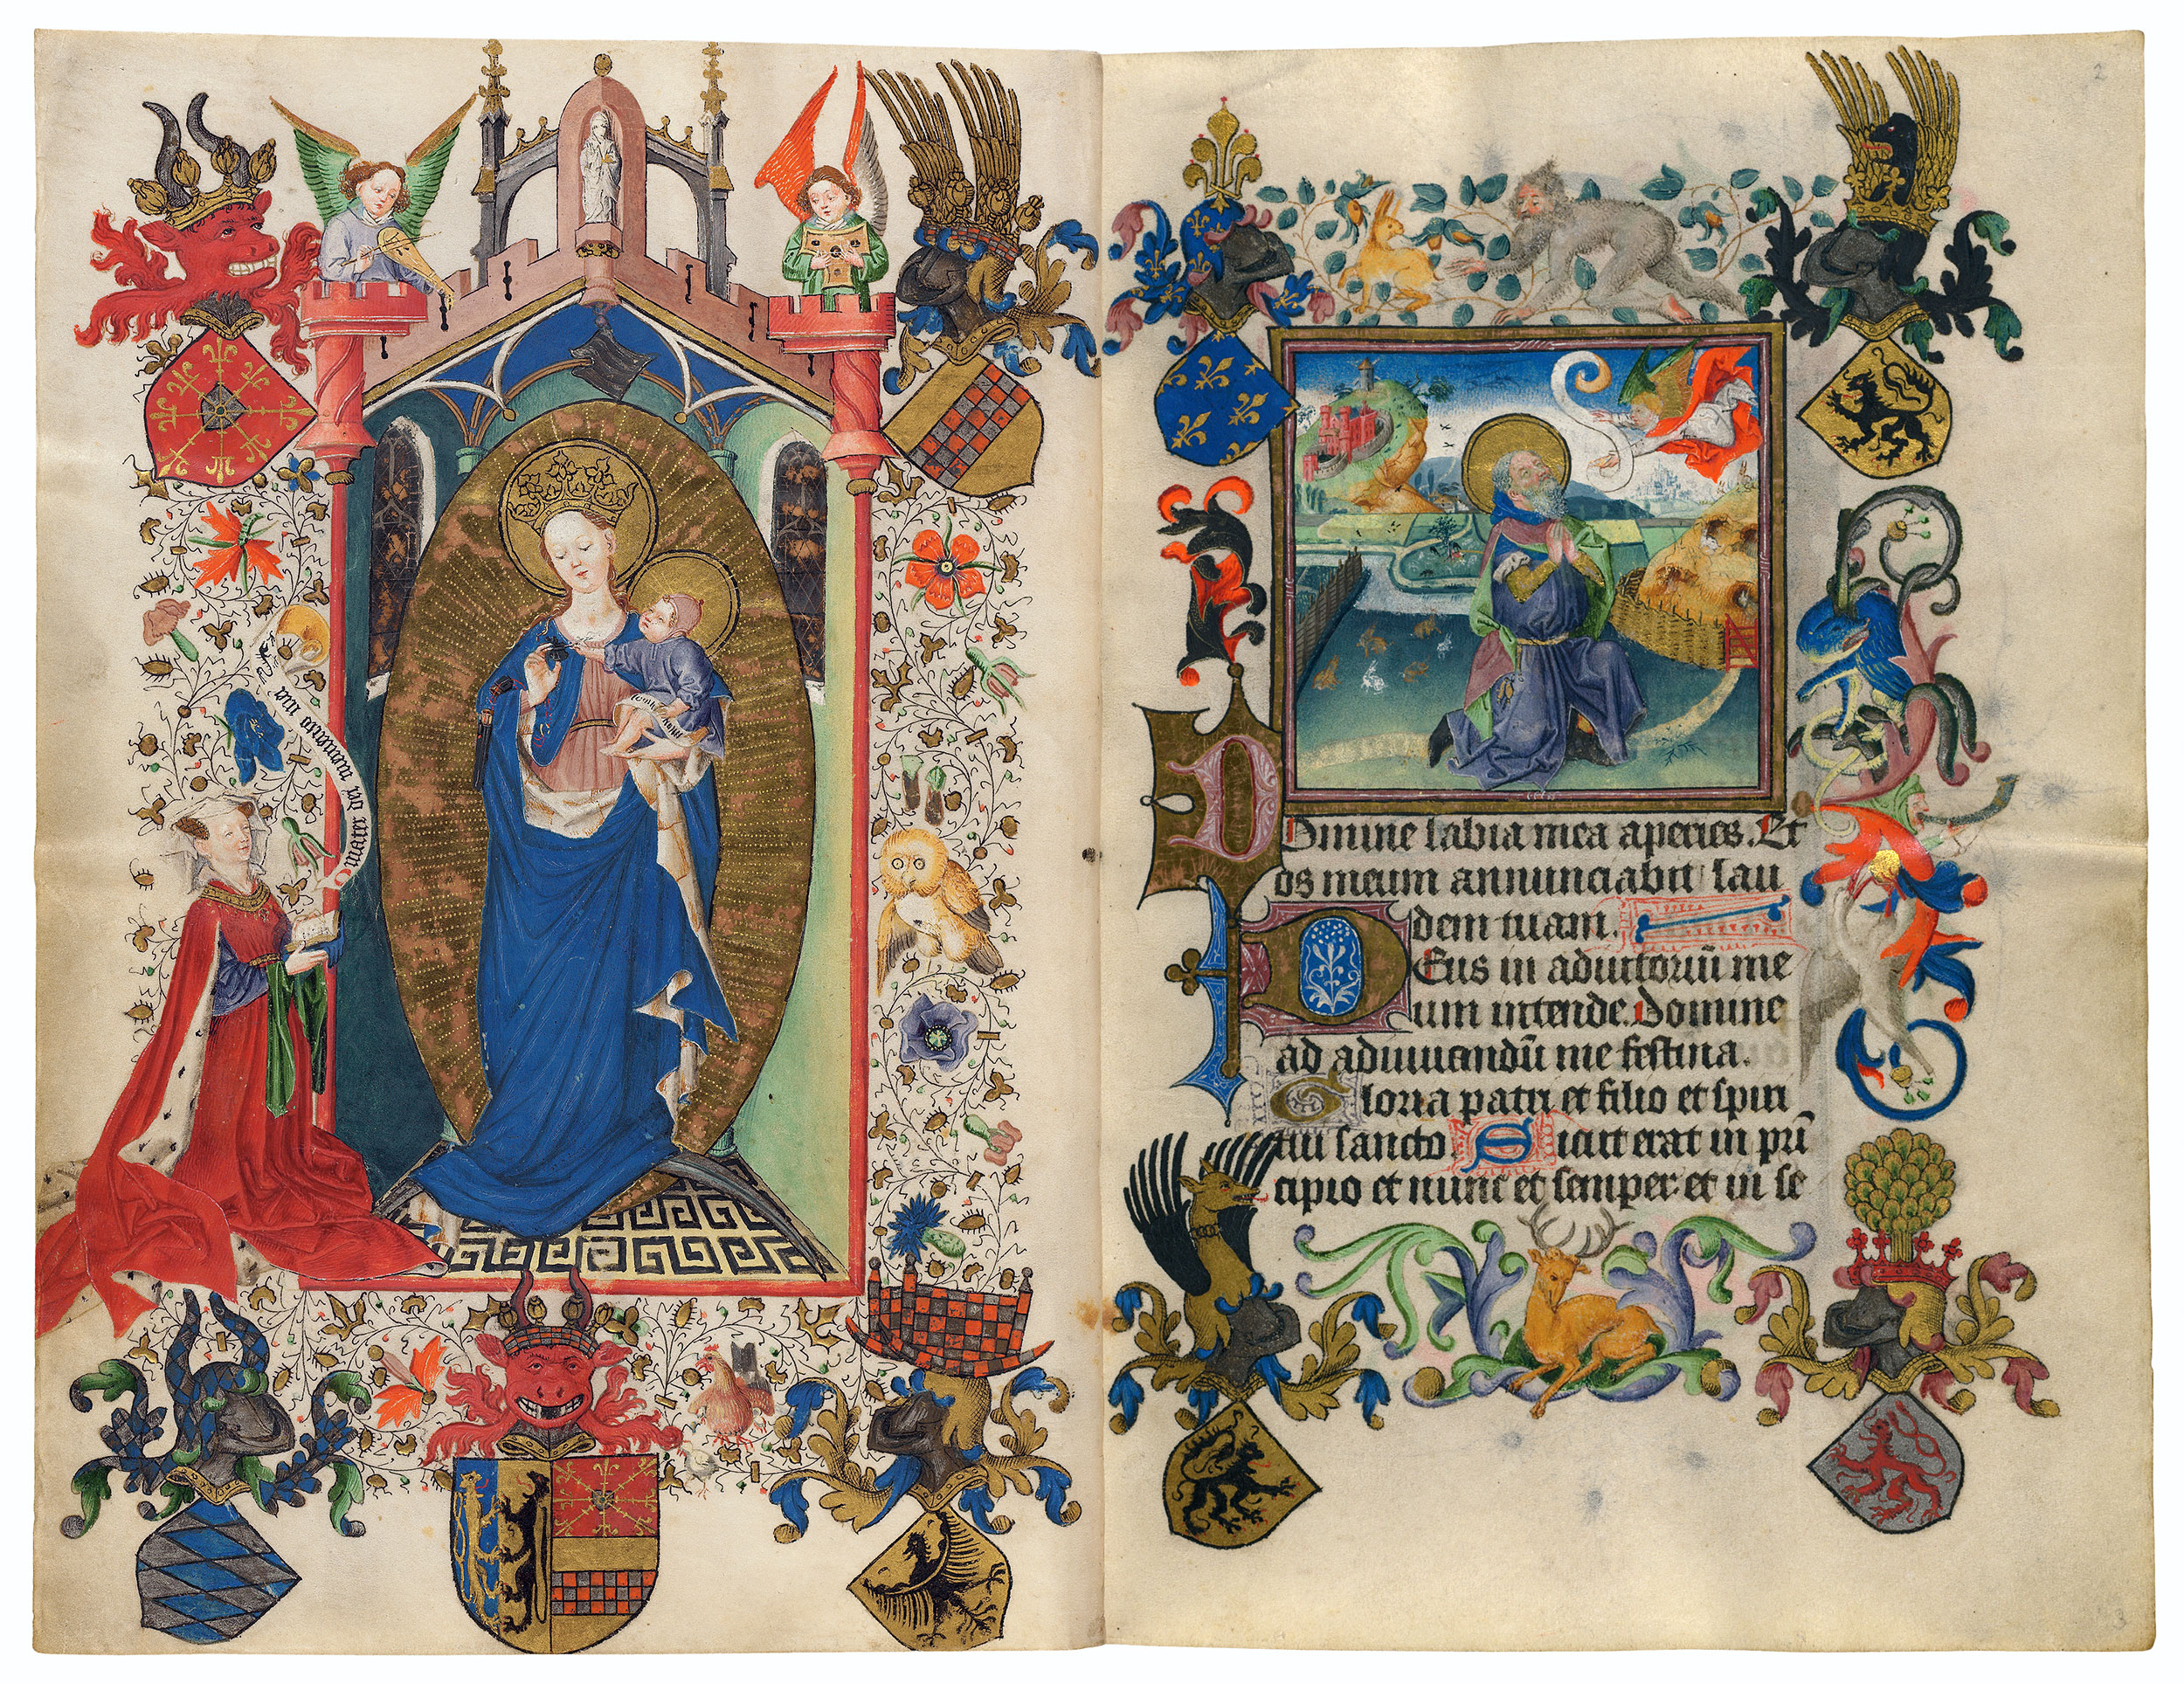 1440 Book of Hours Catherine de Cleves Morgan Library MS M.917945 fol 02r